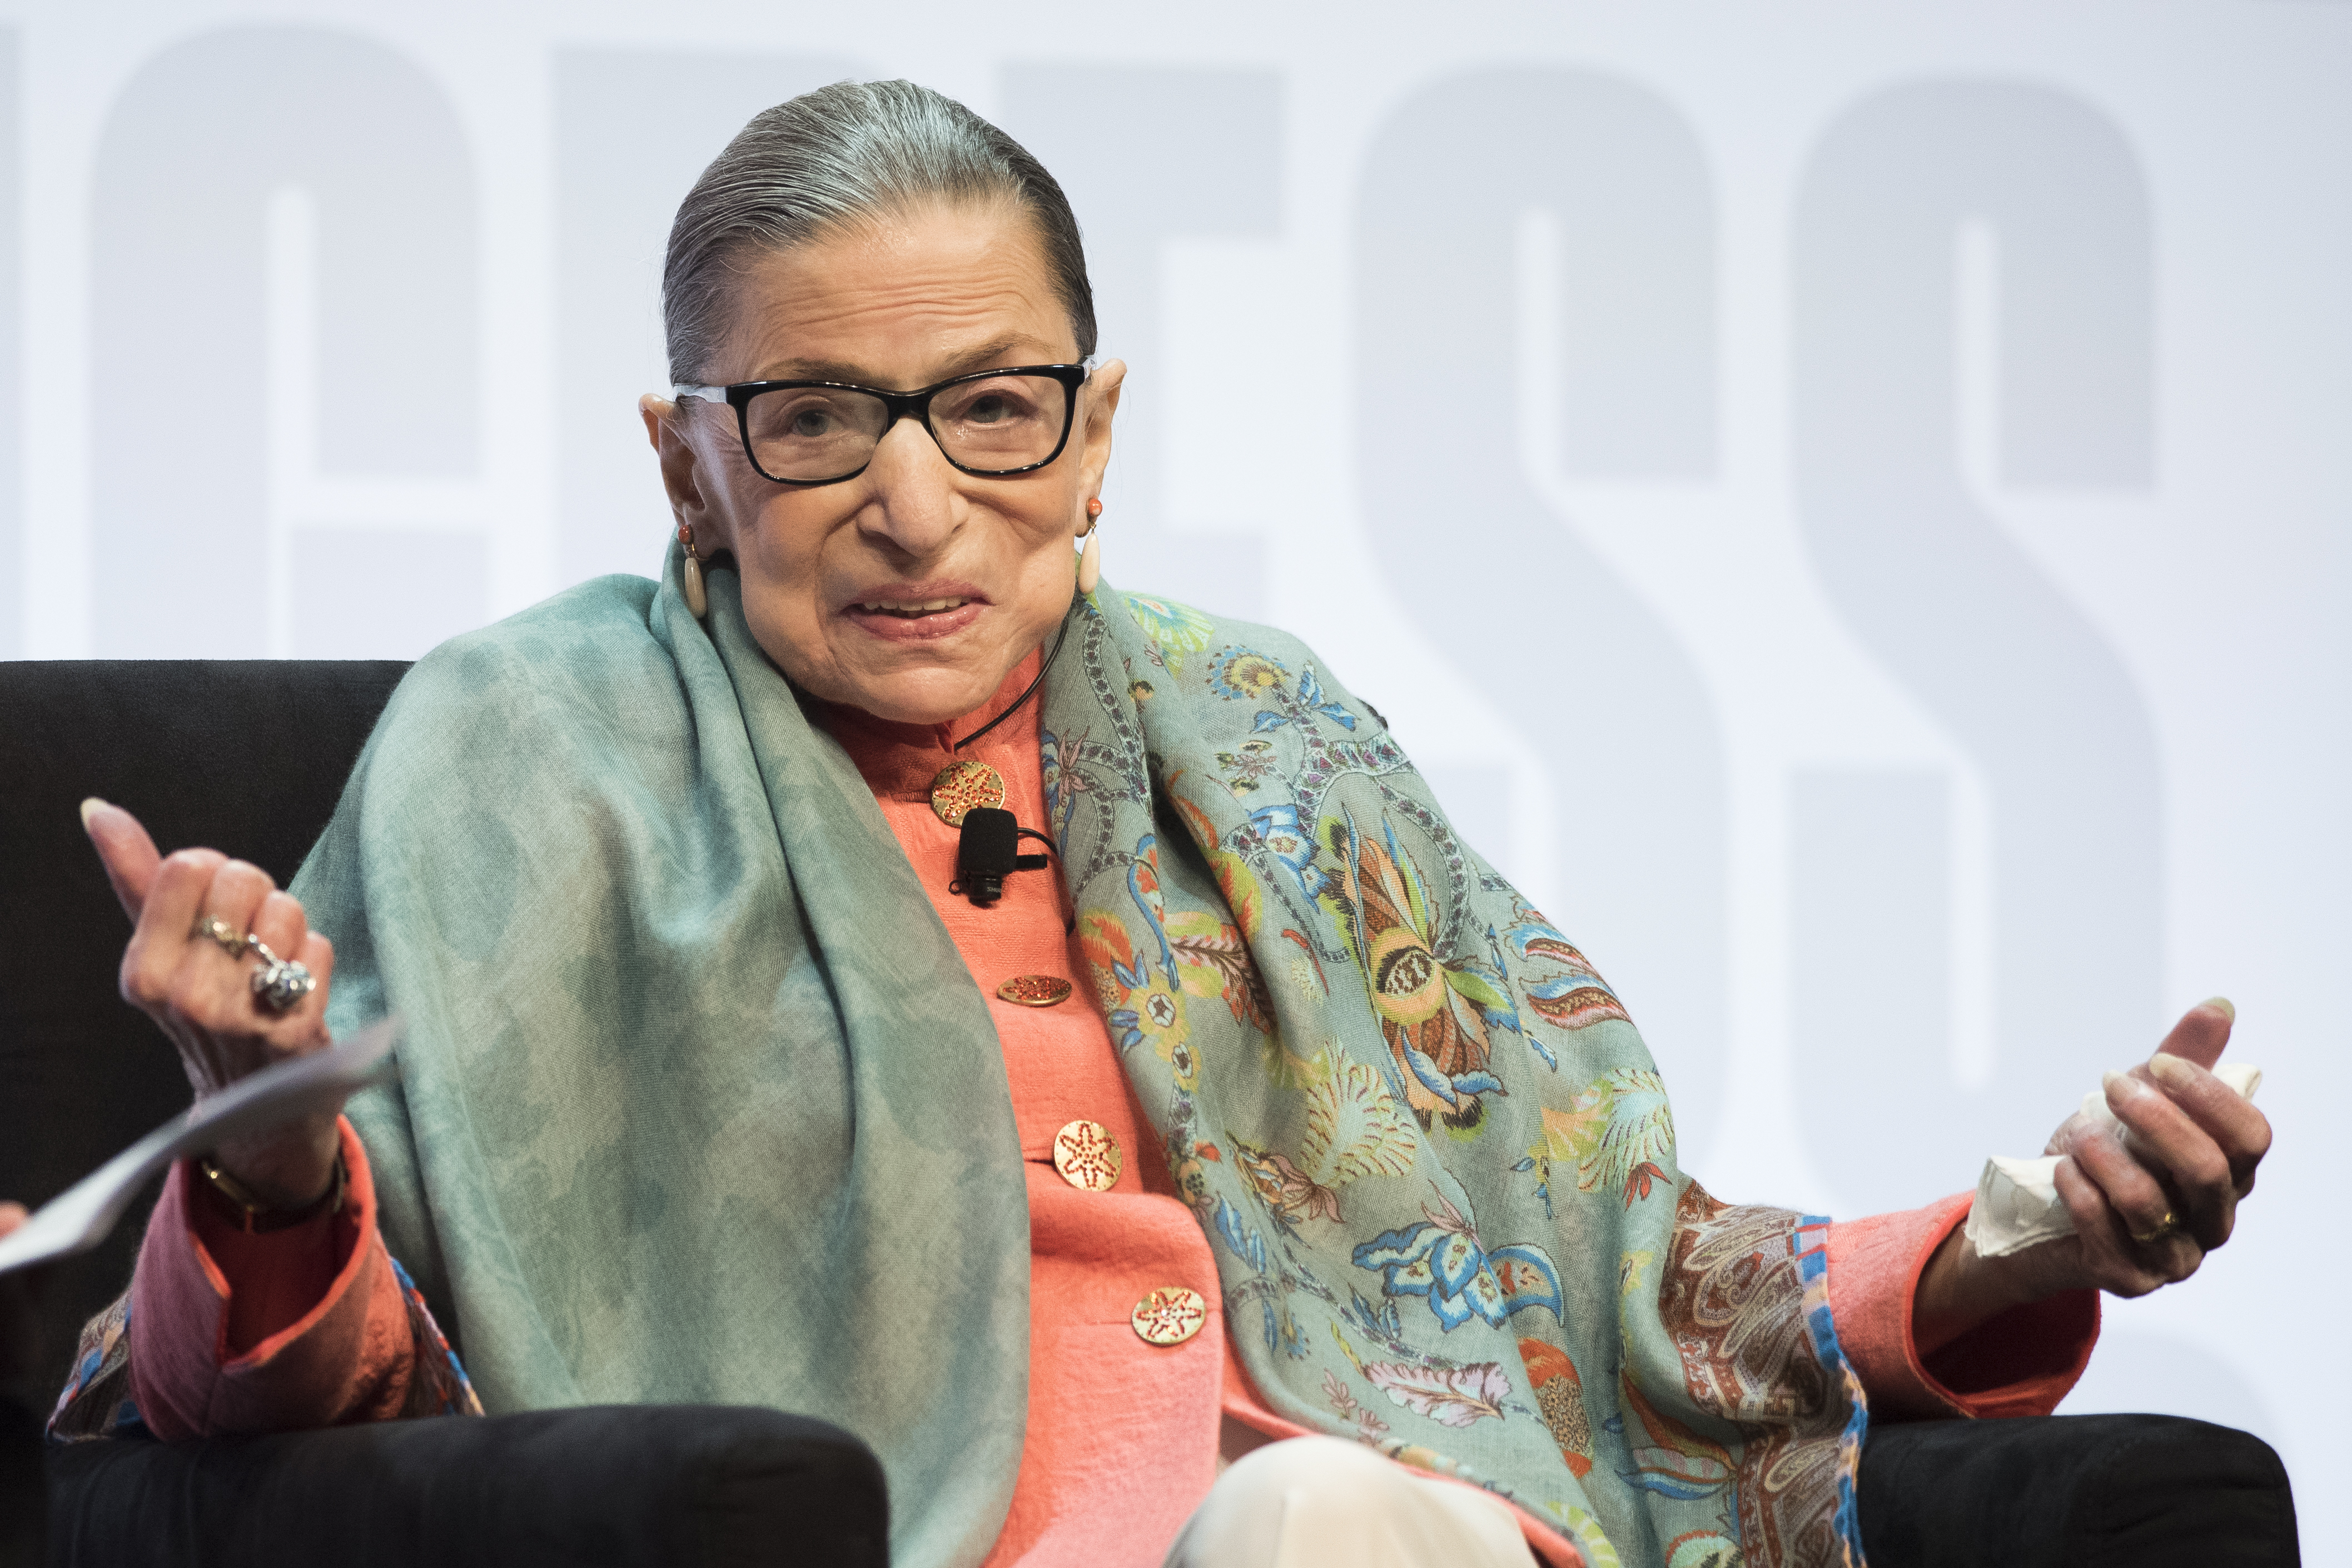 Justice Ginsburg reports shes on way to well after cancer